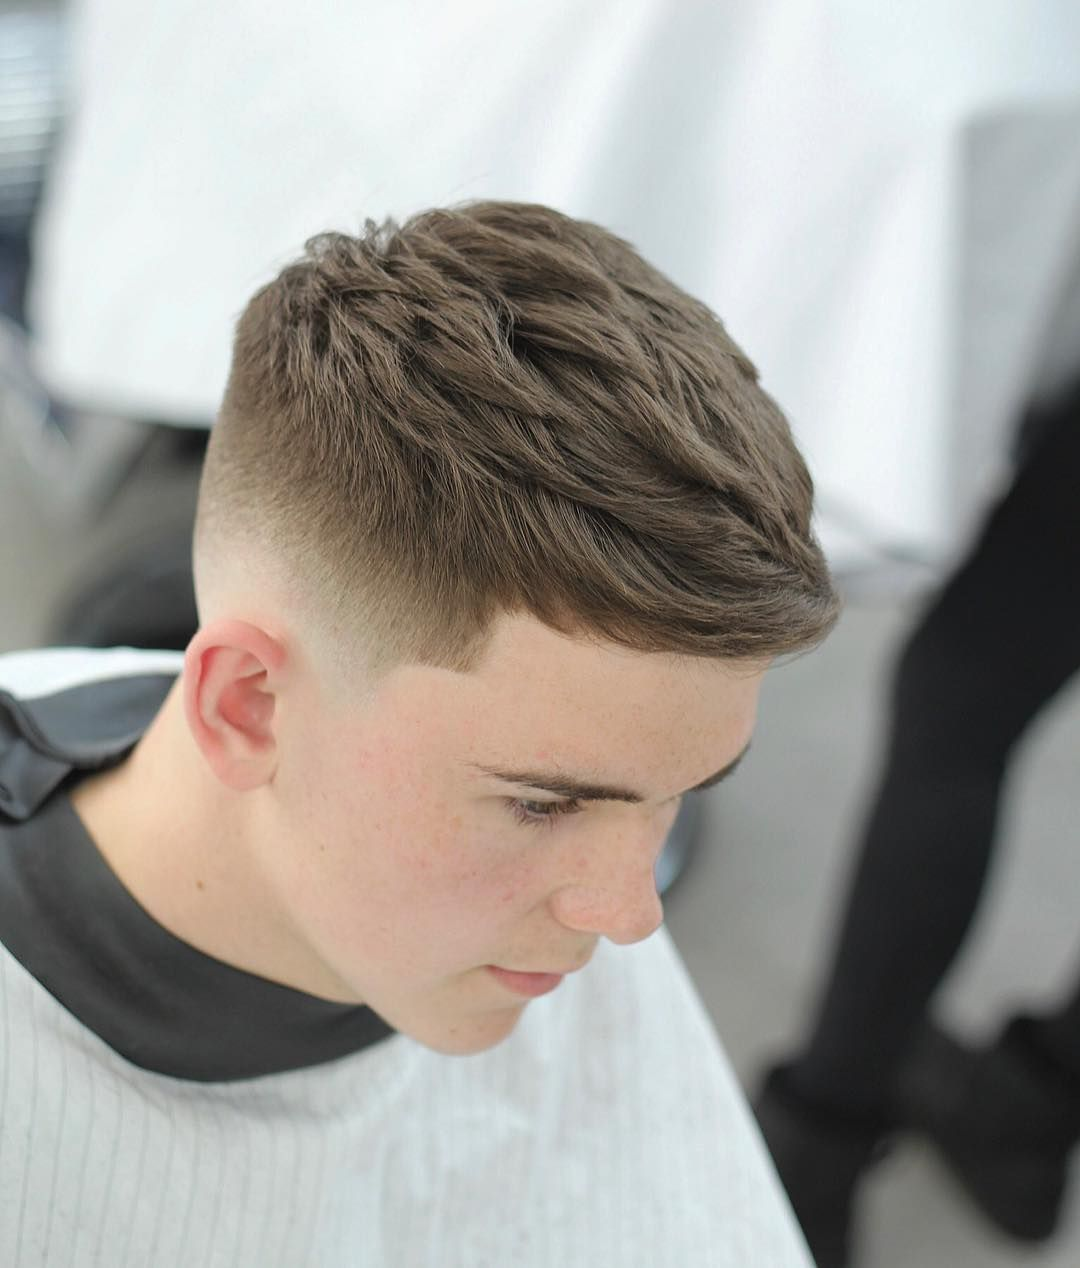 20+ Ideas of Amazing Hairstyle for Kids | Best fade haircuts ...